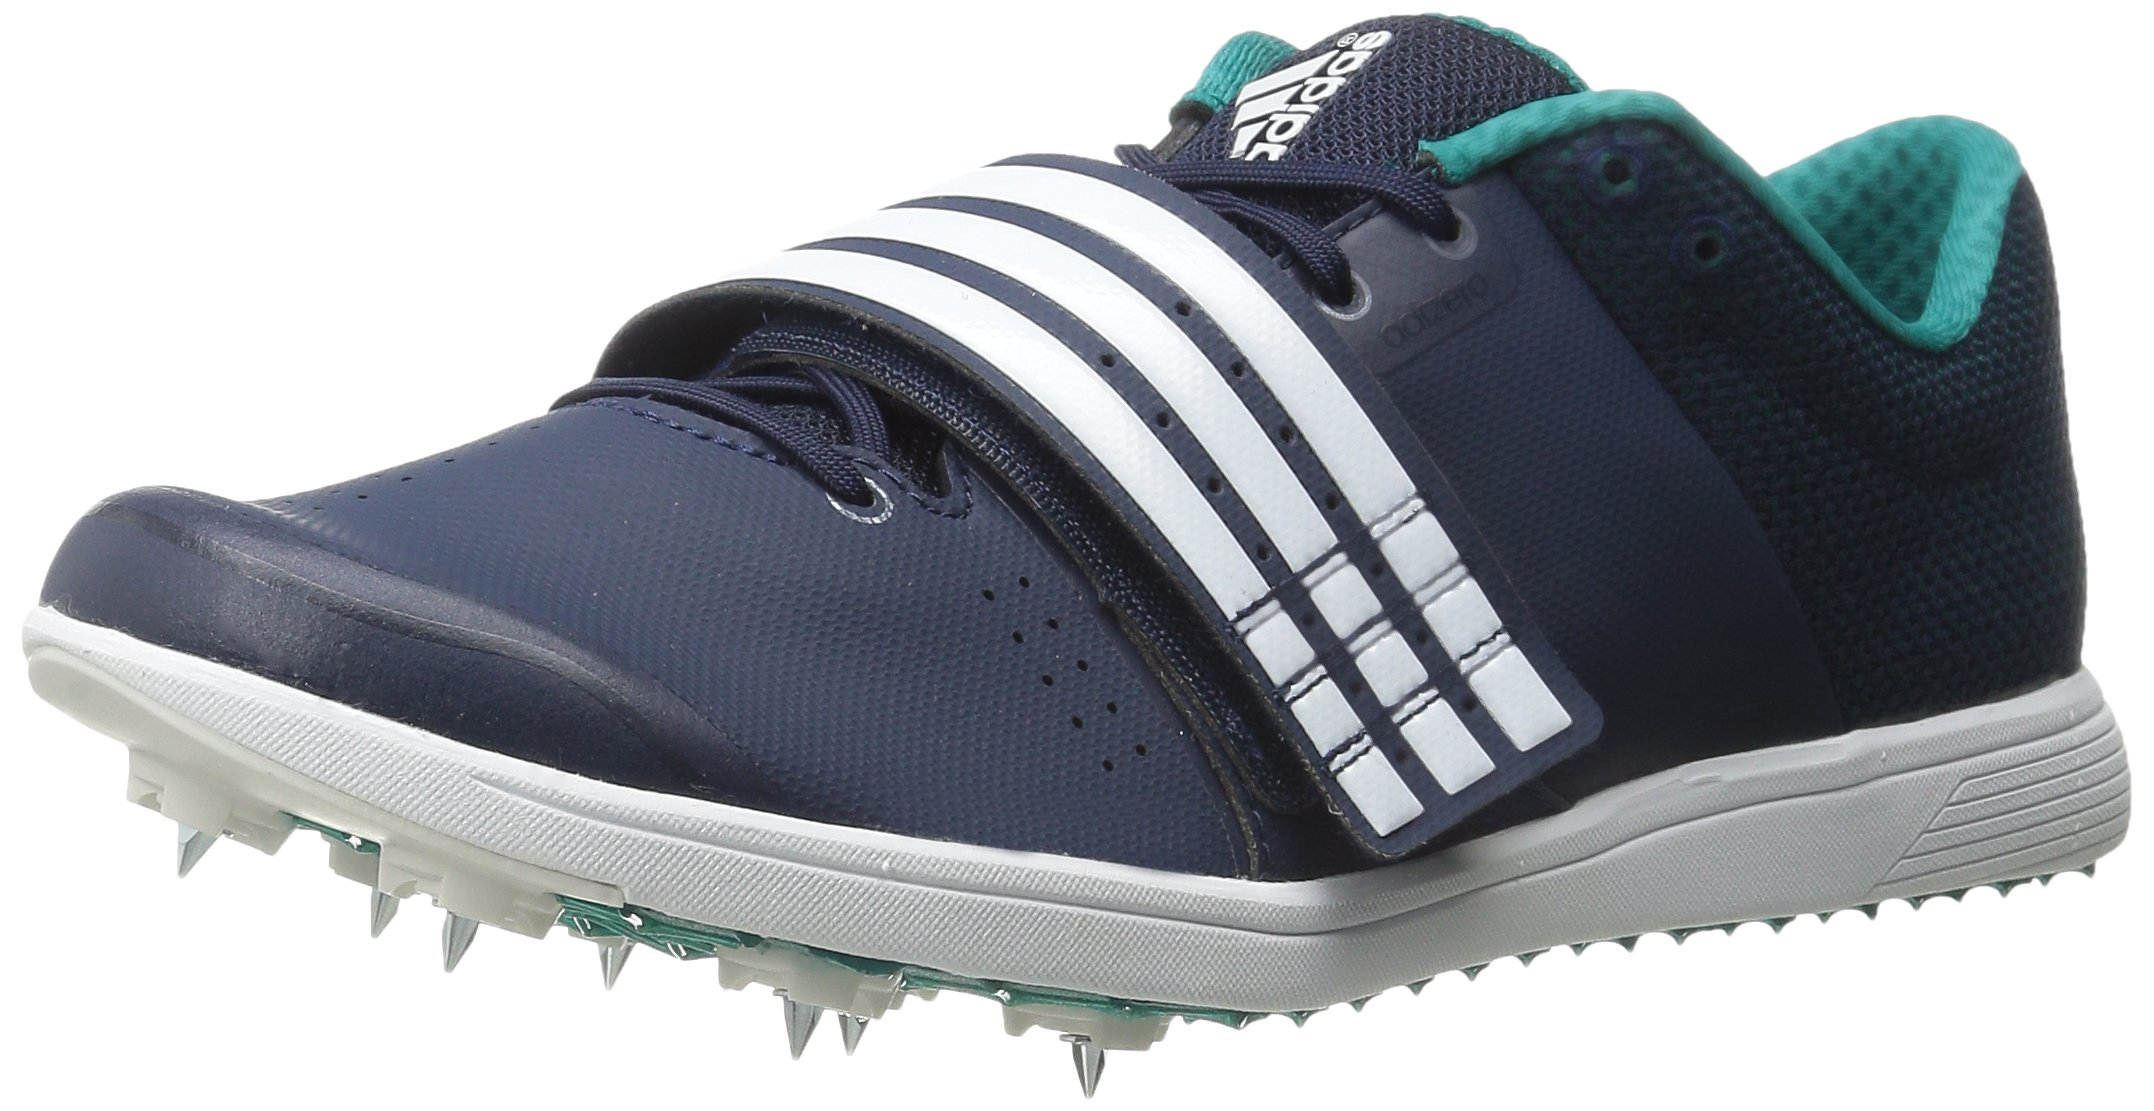 adidas Performance Women's Adizero TJ/PV Running Shoe with Spikes,Collegiate Navy/White/Green,15 M US by adidas (Image #1)